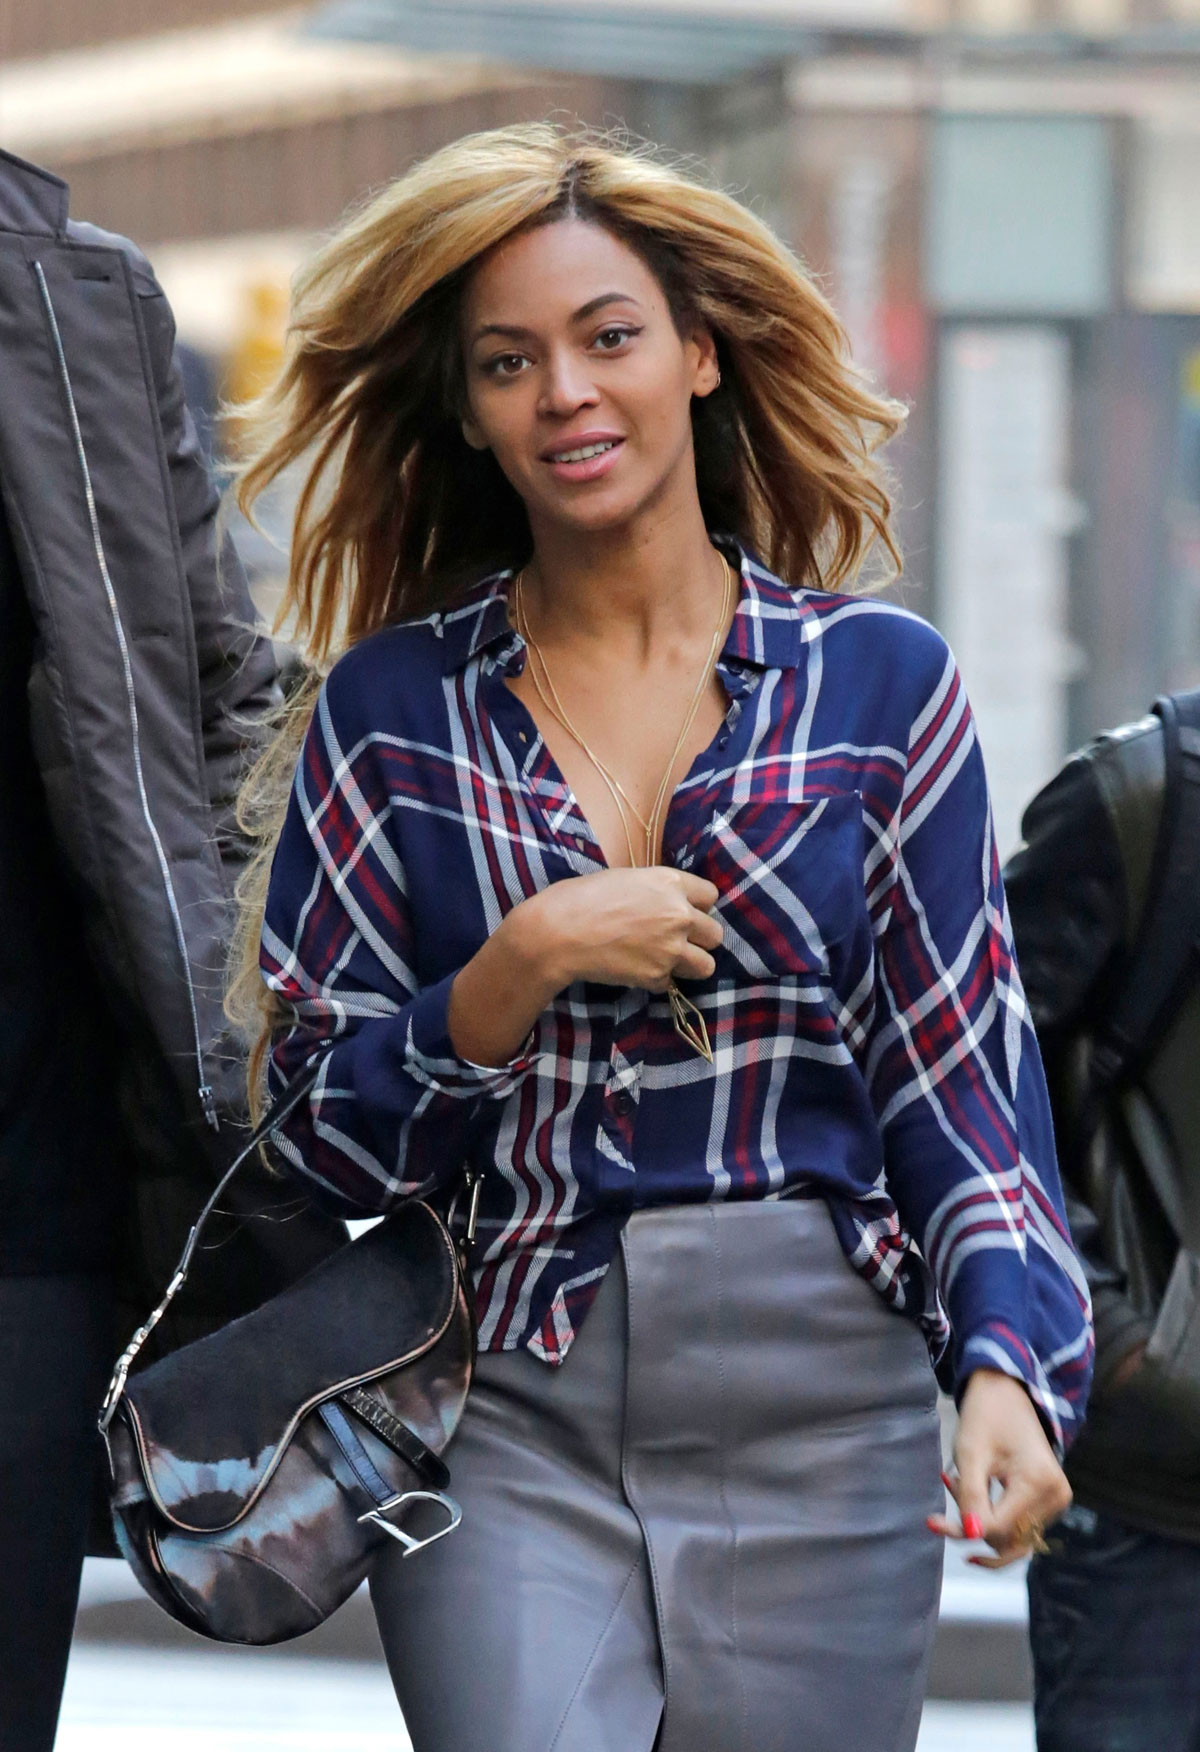 Beyonce out & about in NYC